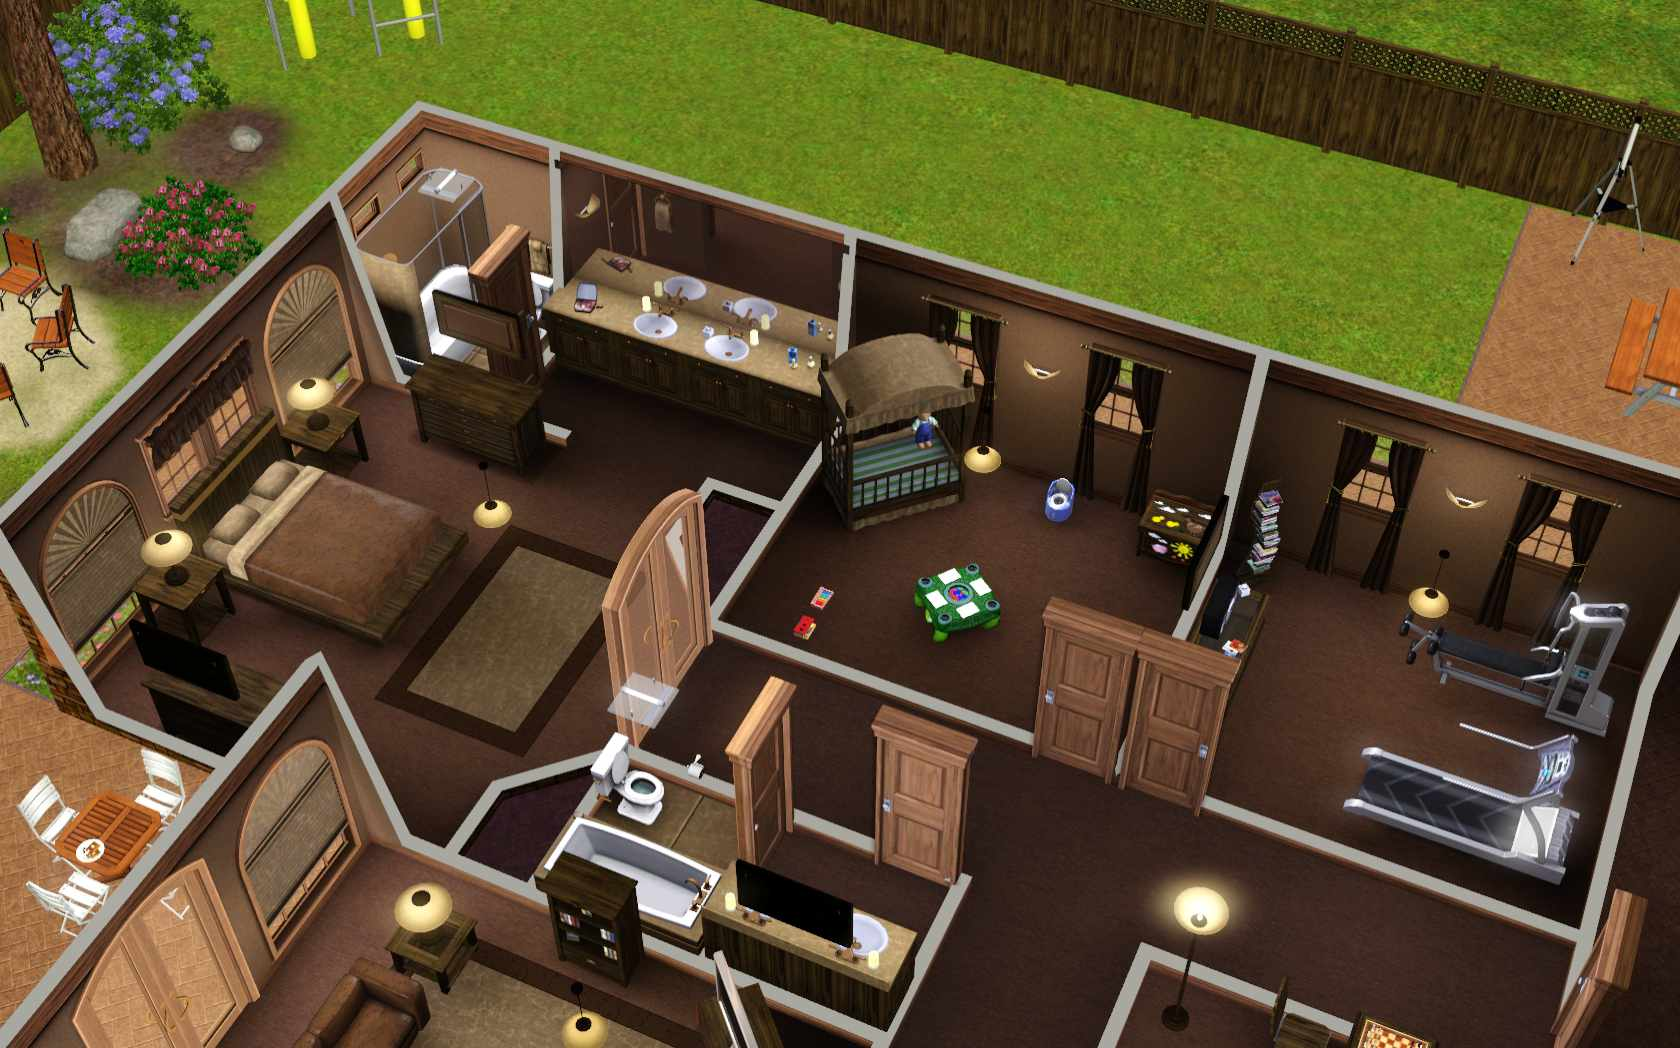 the sims 3 home building and design - Sims 4 Home Design